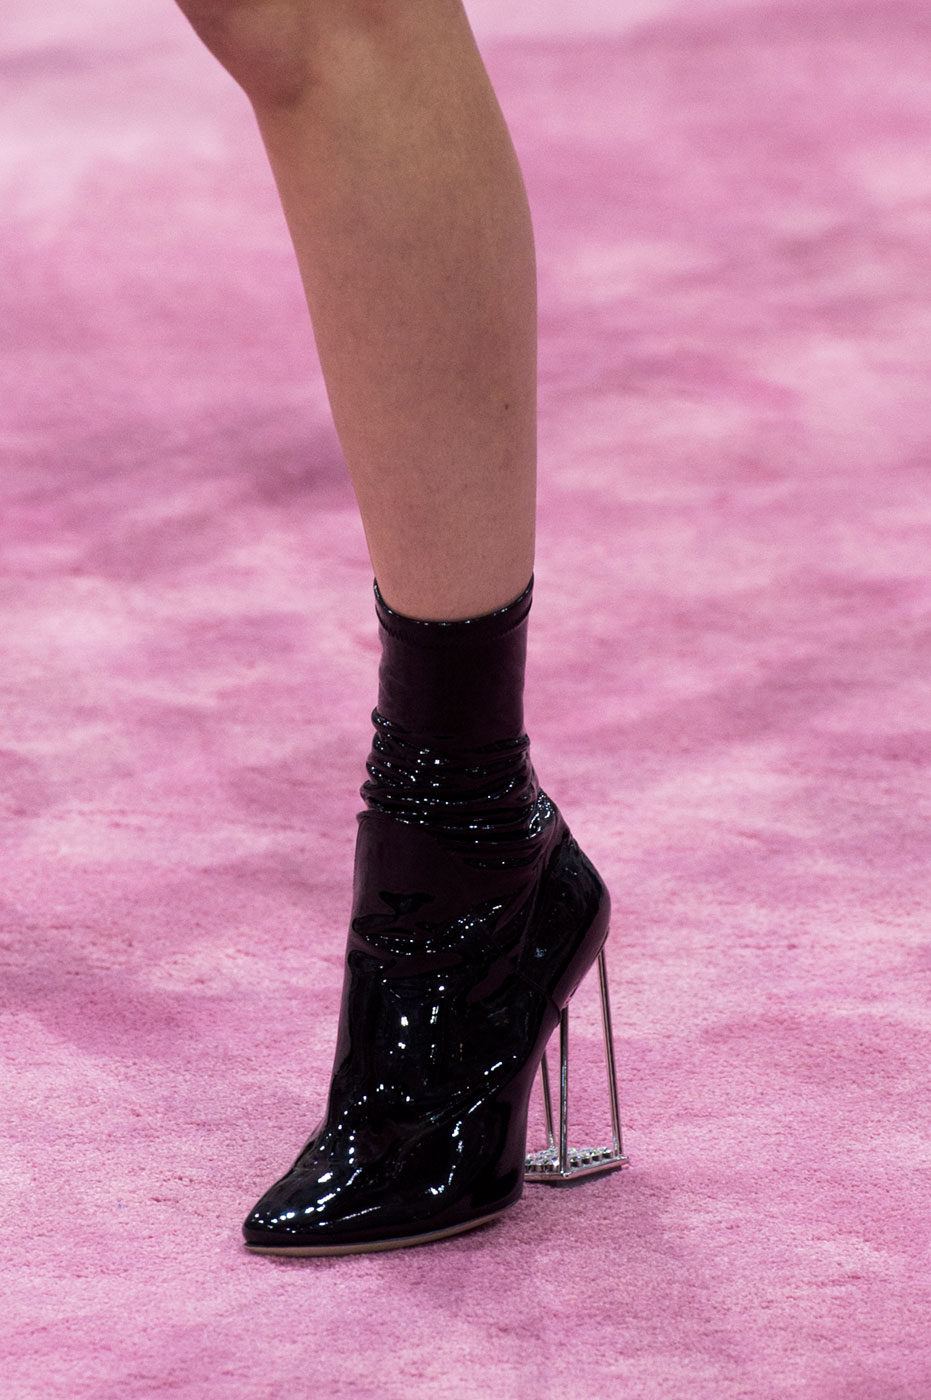 Christian-Dior-fashion-runway-show-close-ups-haute-couture-paris-spring-summer-2015-the-impression-202